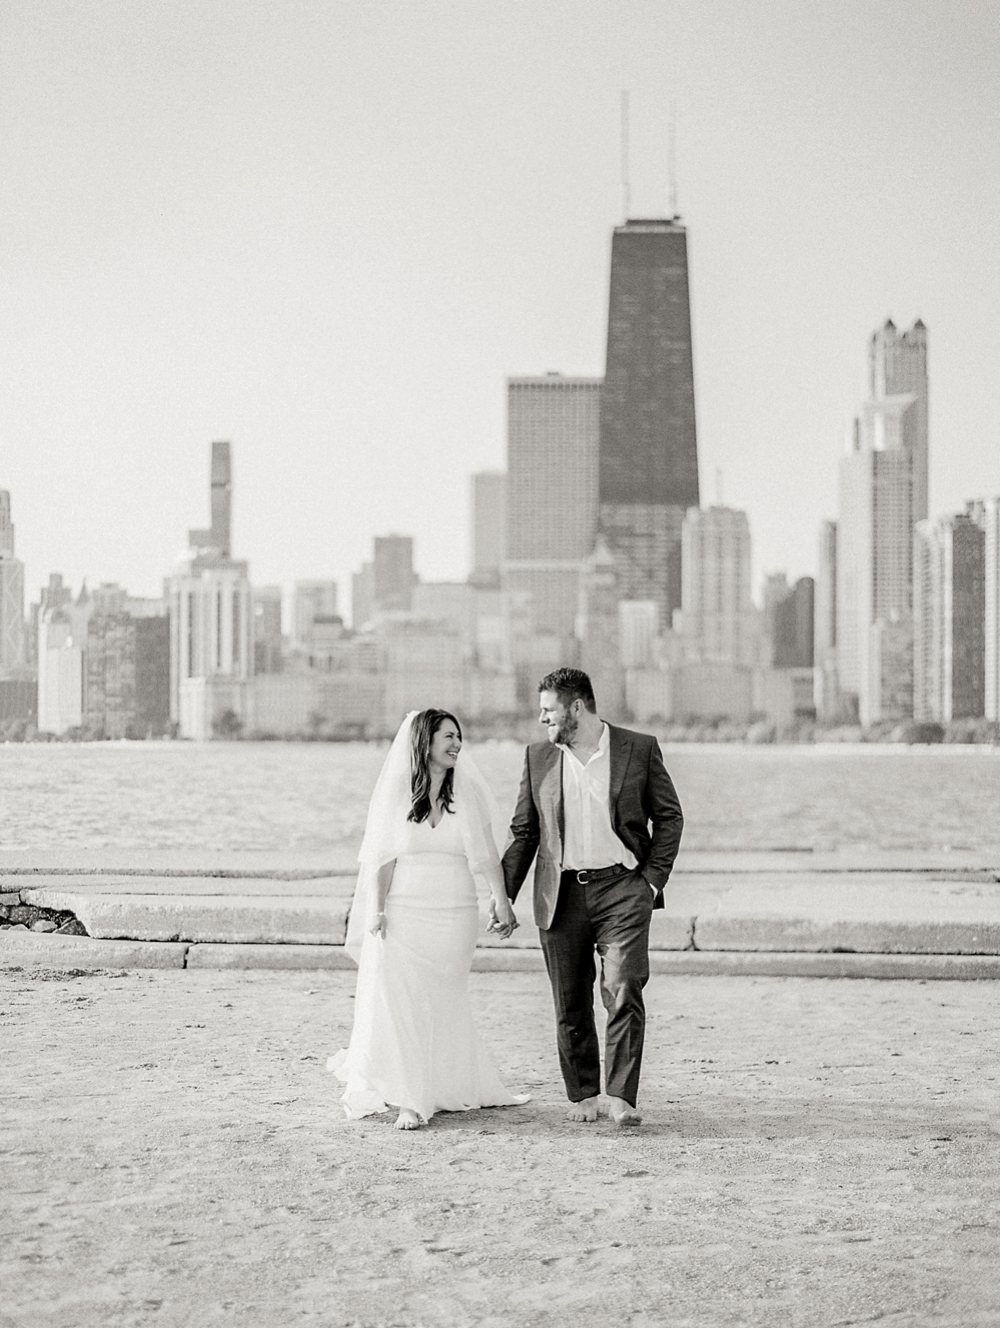 Kristin-La-Voie-Photography-CHICAGO-WEDDING-PHOTOGRAPHER-24